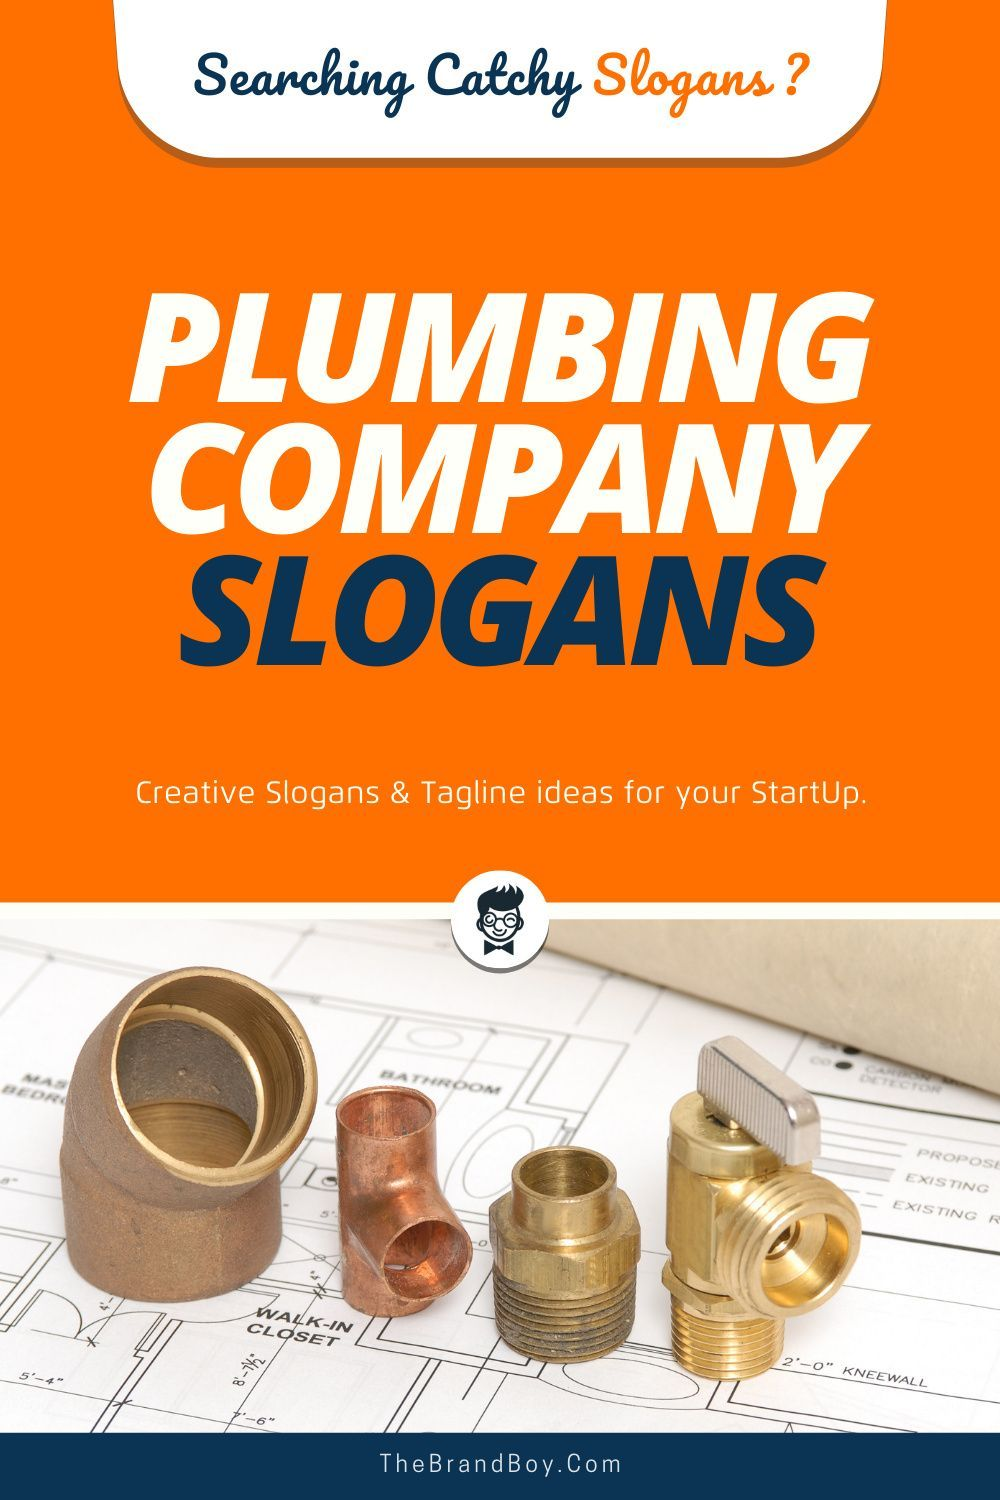 171 Catchy Plumbing Company Slogans And Taglines Thebrandboy Business Slogans Company Slogans Catchy Taglines